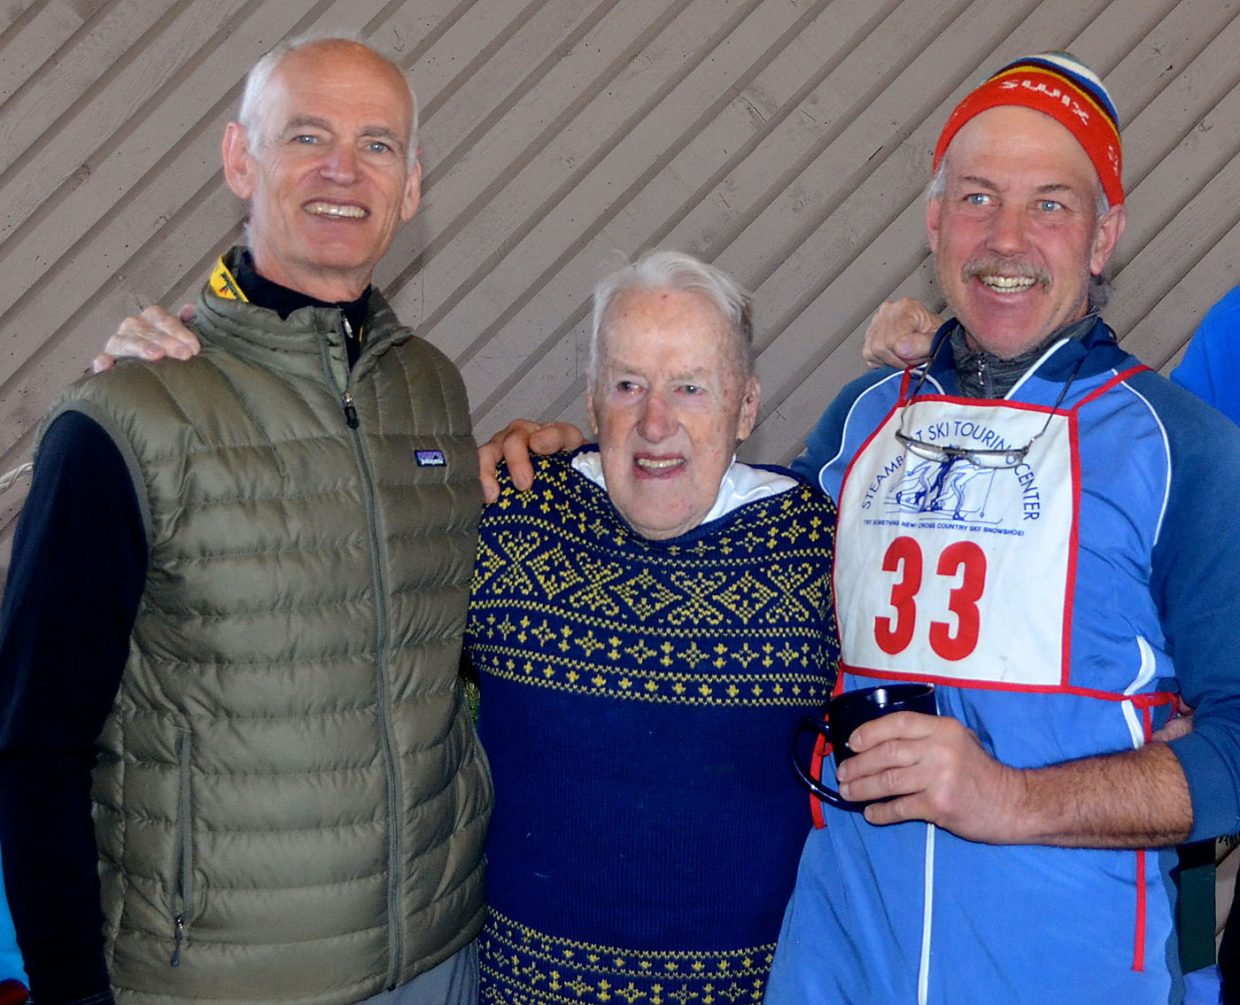 Dr. Dan Smilkstein, left, and longtime Steamboat Springs Winter Sports Club cross-country skiing Coach Greg Burkholder, right, were among the many well-wishers at Sven Wiik's 94th birthday party in 2015 who were eager to be photographed with the skiing hall of famer who died July 5, 2016, at 95.